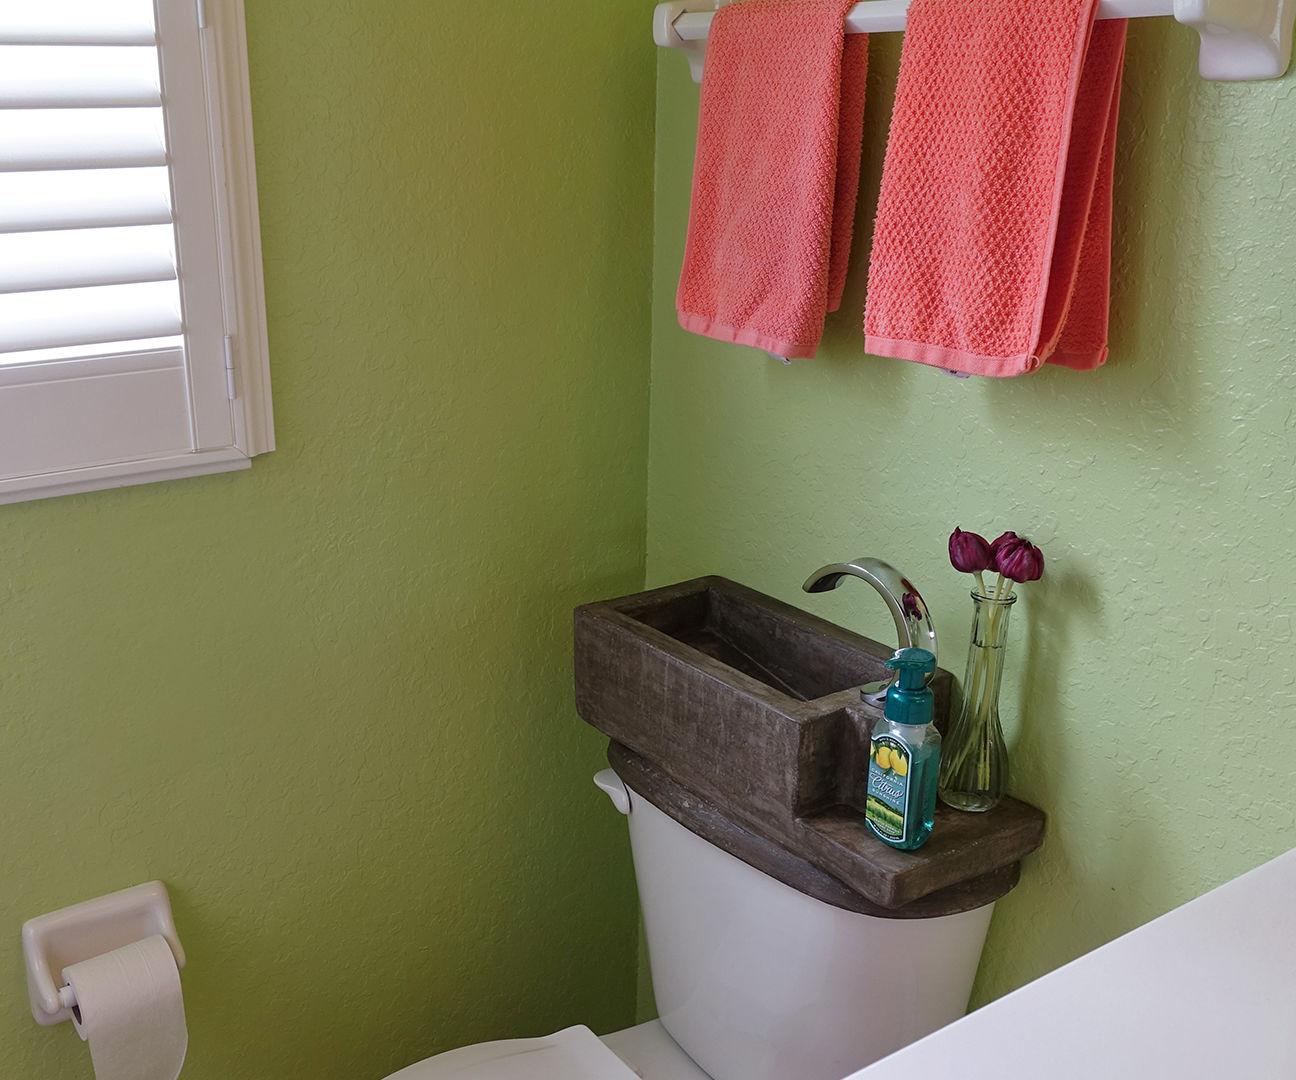 I Made a Toilet Tank Sink!